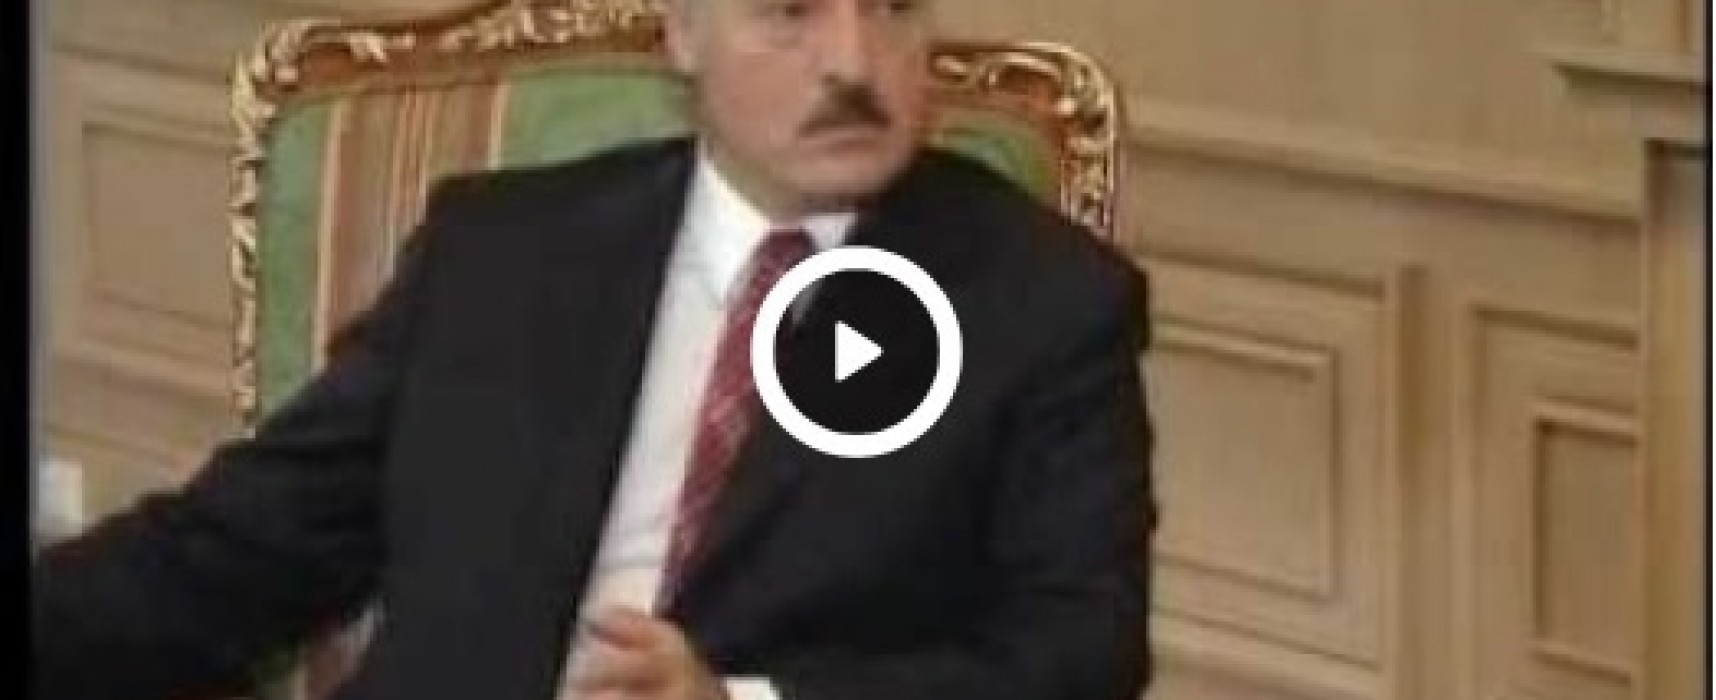 Lukashenko's Statements of 2010 about Closing the European Gas Pipeline is Presented as Breaking News